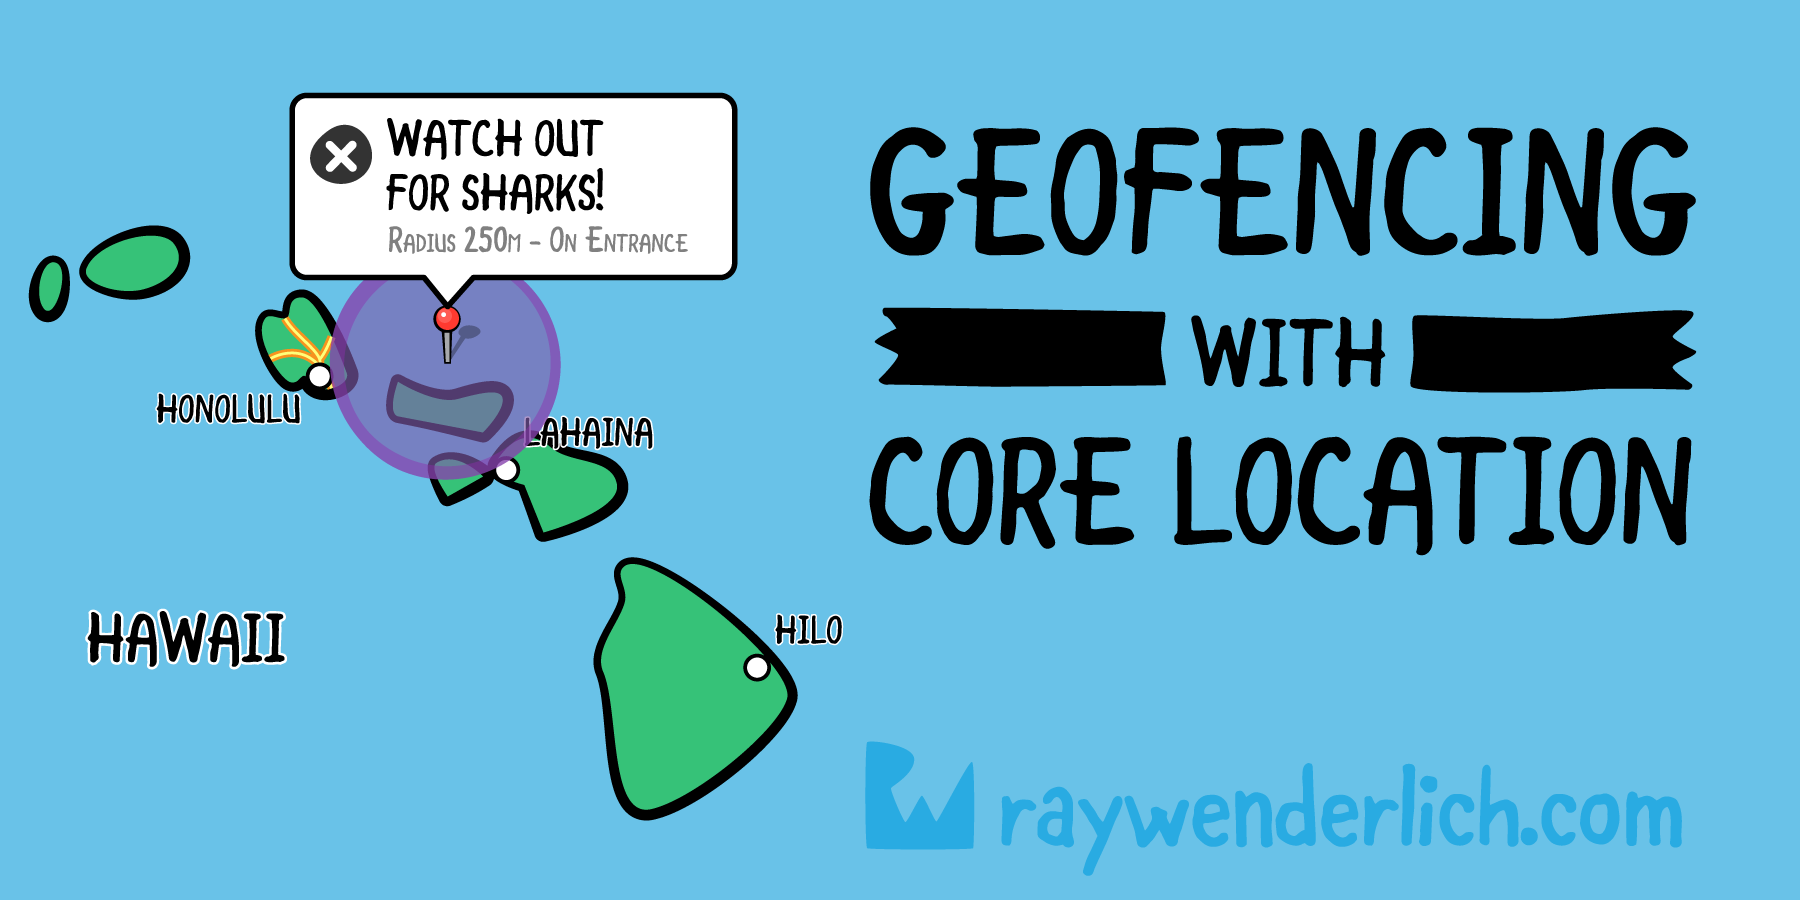 Geofencing with Core Location: Getting Started | raywenderlich com